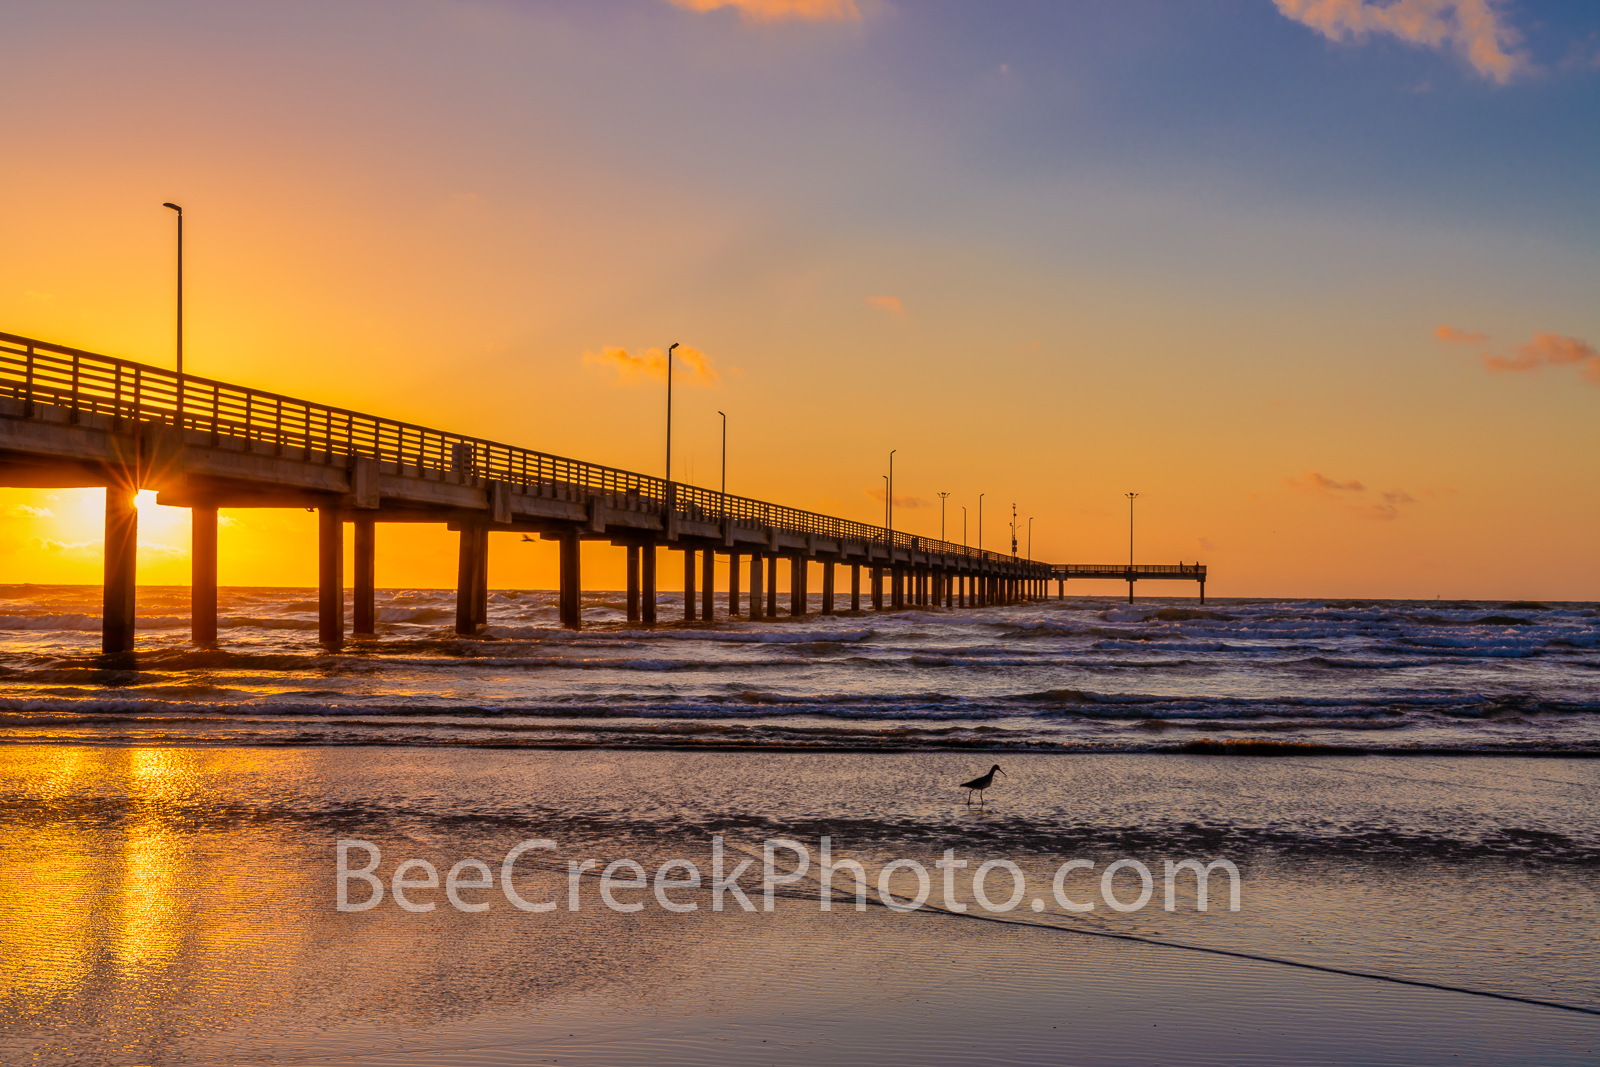 Port A Caldwell Pier Sunrise Glow Texas Coast- We captured this image one side of the Port A Caldwell Pier as the sunrise rises...